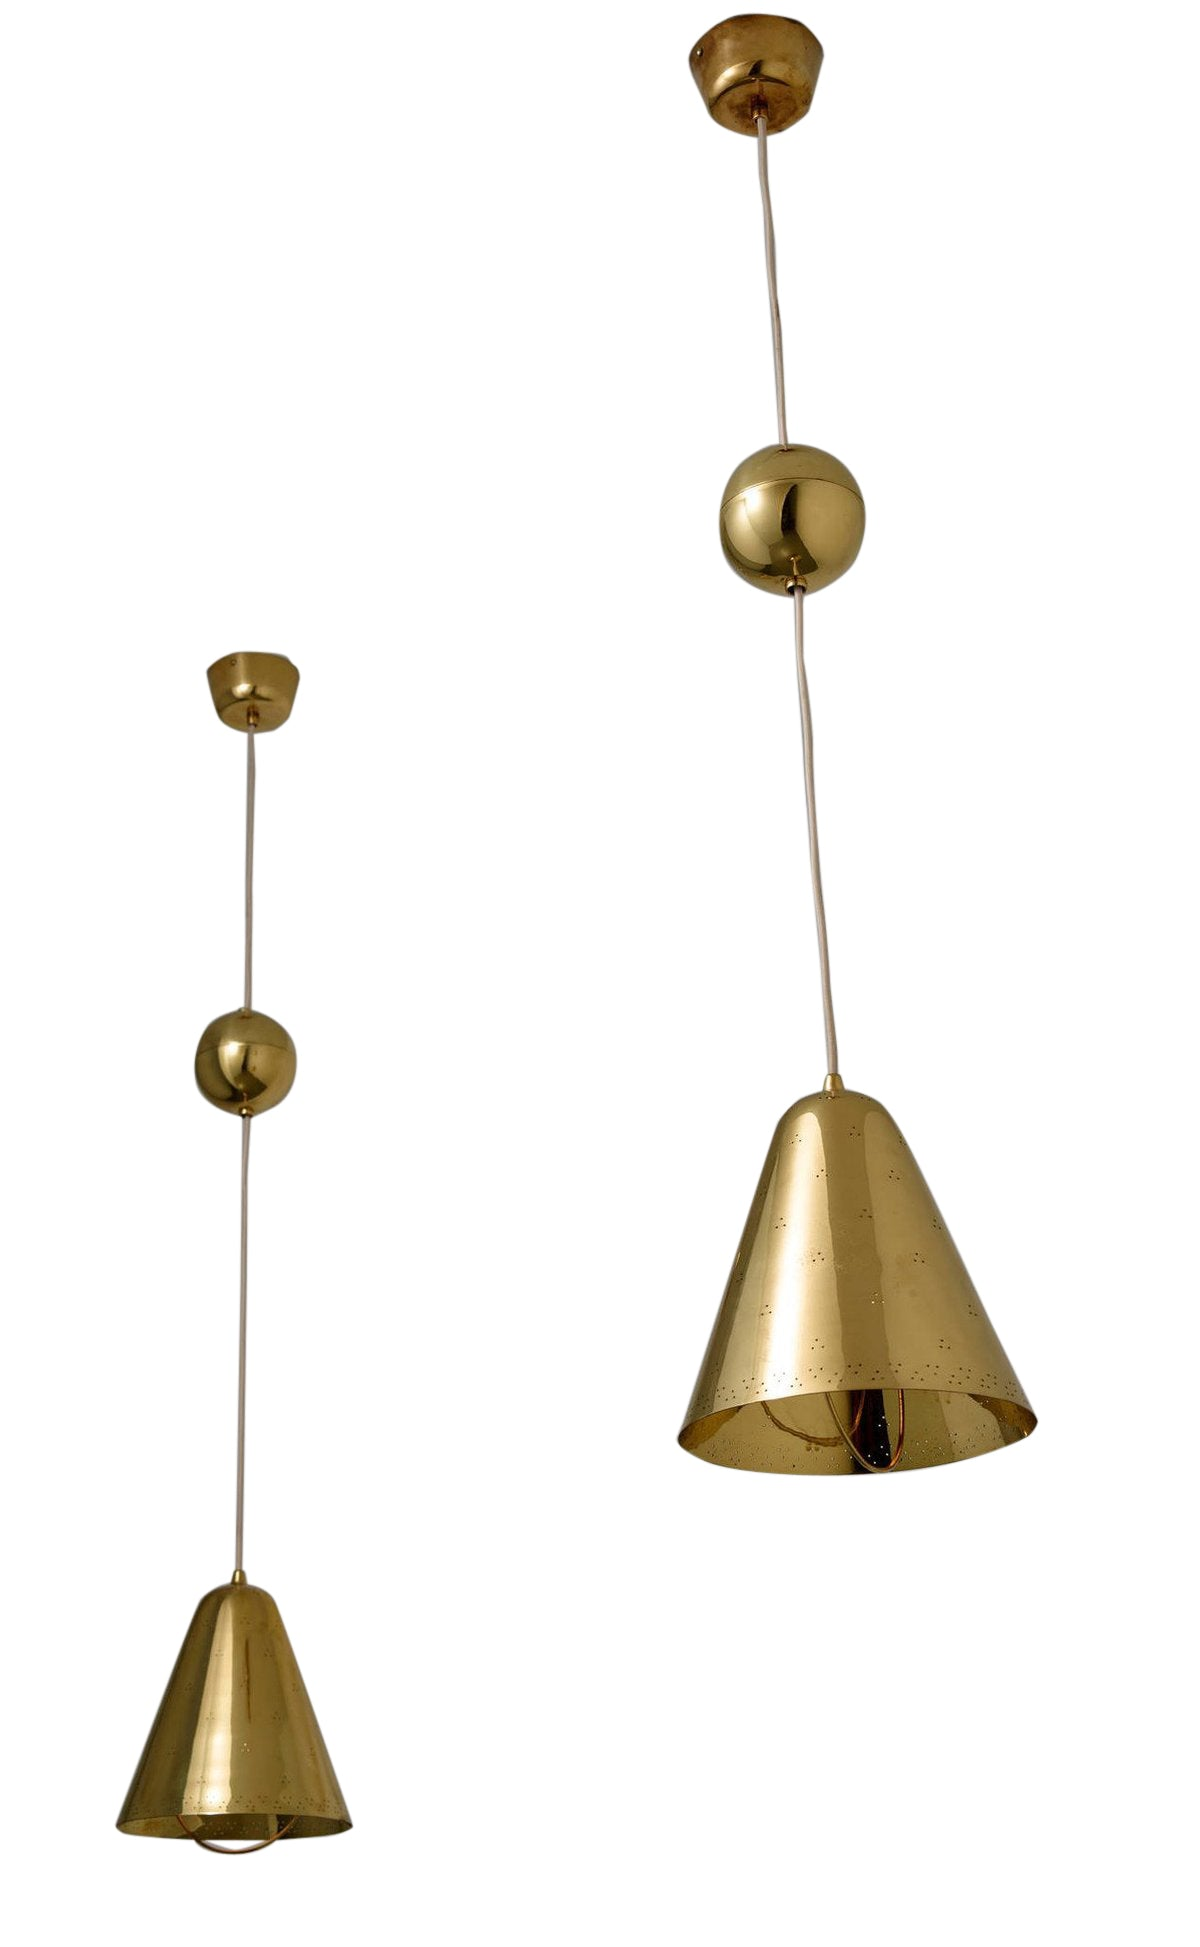 Paavo Tynell, Adjustable Pendant Lights, Pair by Taito Oy, 1950s